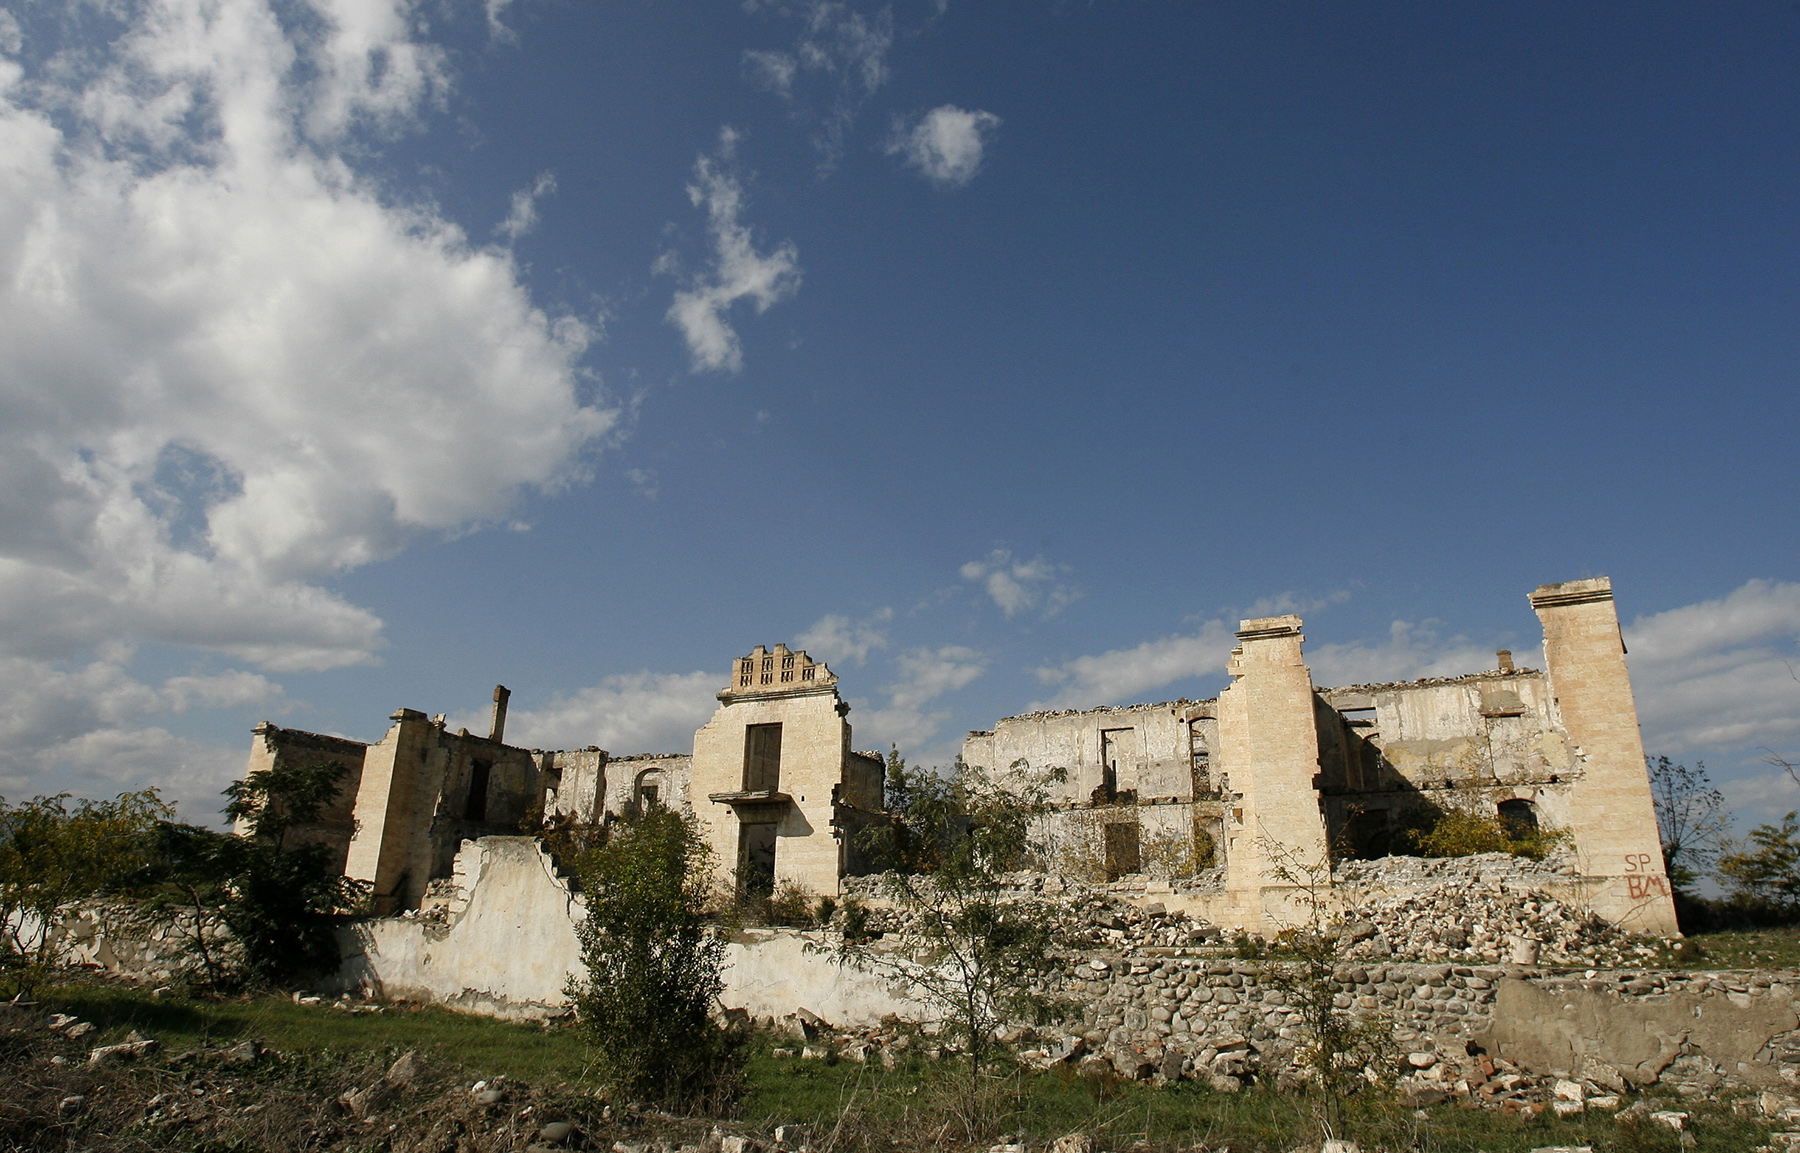 Ruins in the town of Agdam